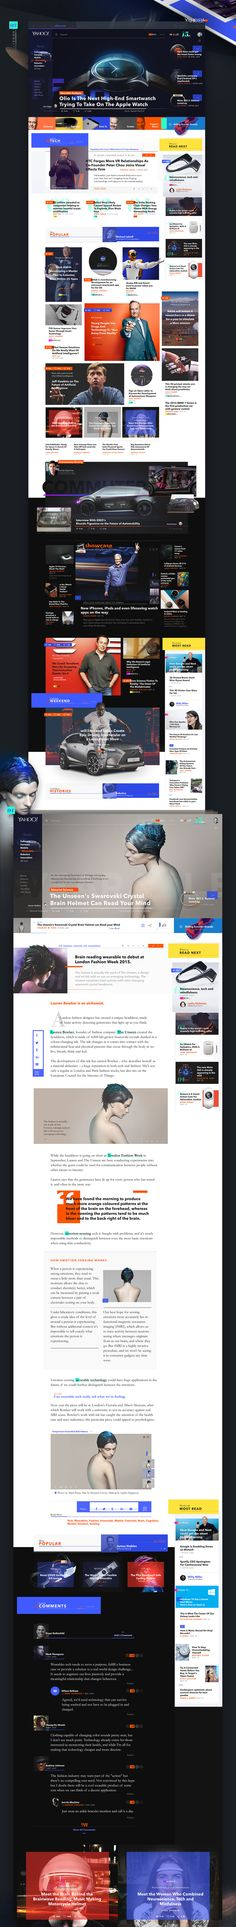 This project involves the redesign of the Yahoo! News platform. The idea behind is to create a functional system for various devices where my interests fit my needs browsing news and entertainment. The aim is to improve functional and visually the site, t…